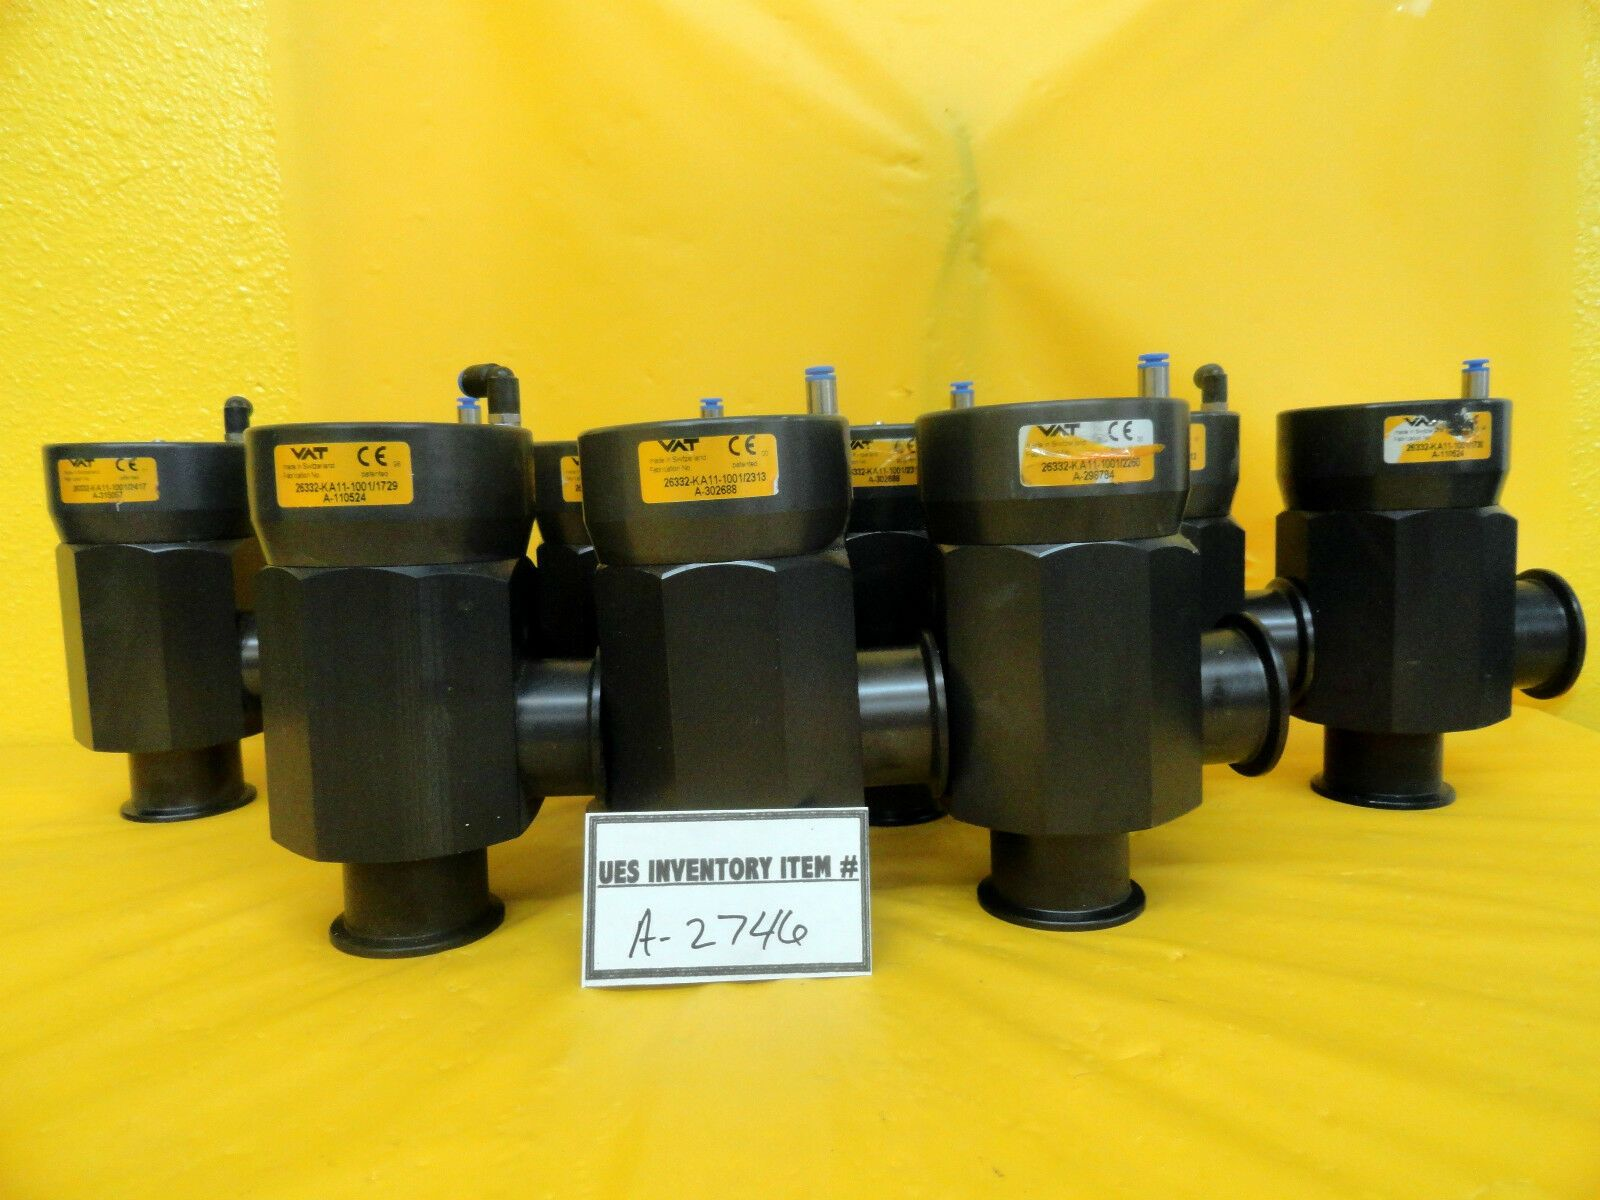 VAT 26332-KA11-1001 Right Angle Isolation Valve Lot of 9 Used Working